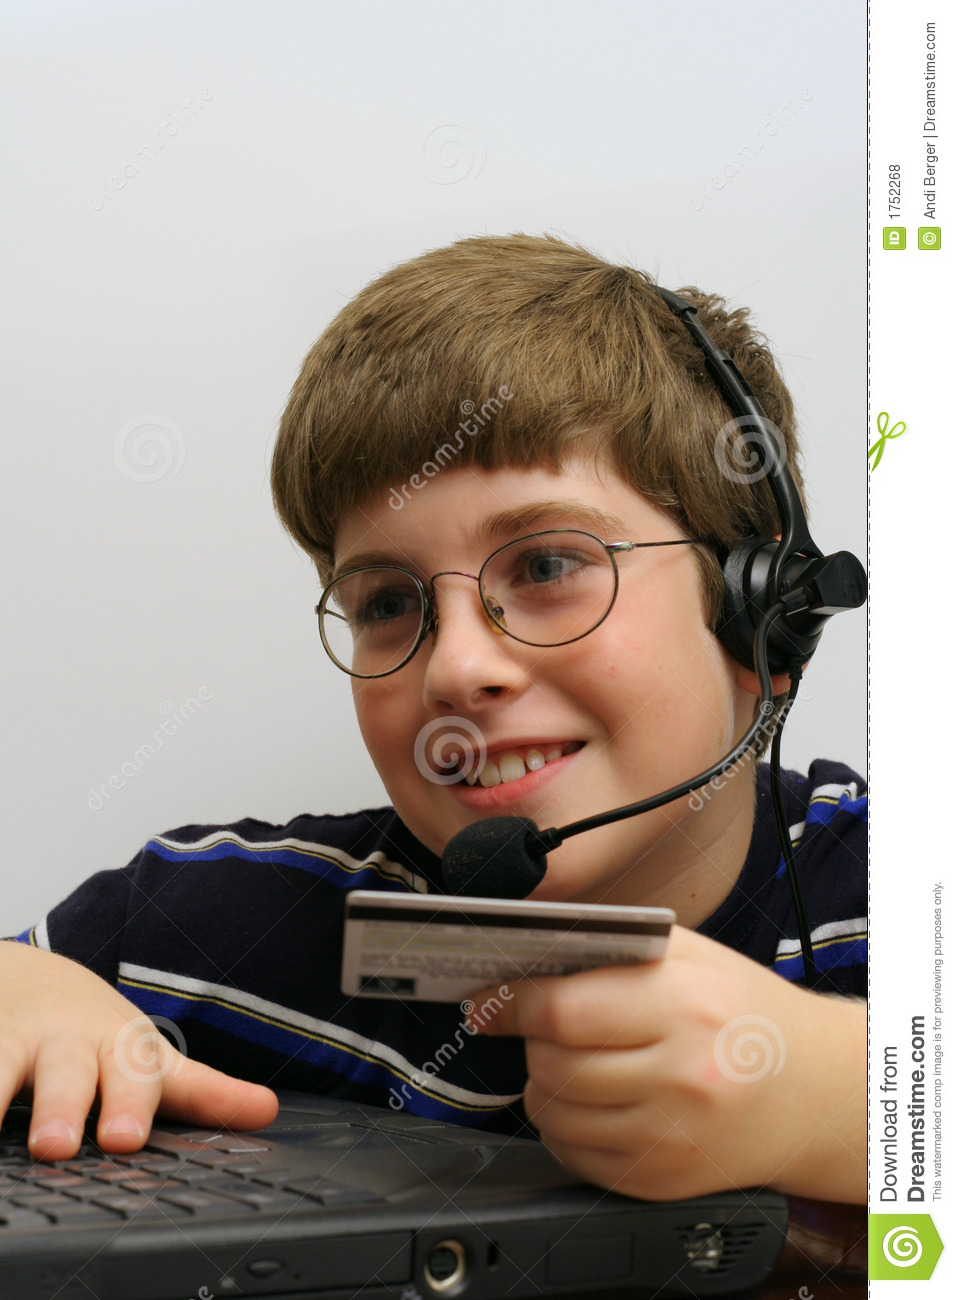 Young Boy On Computer